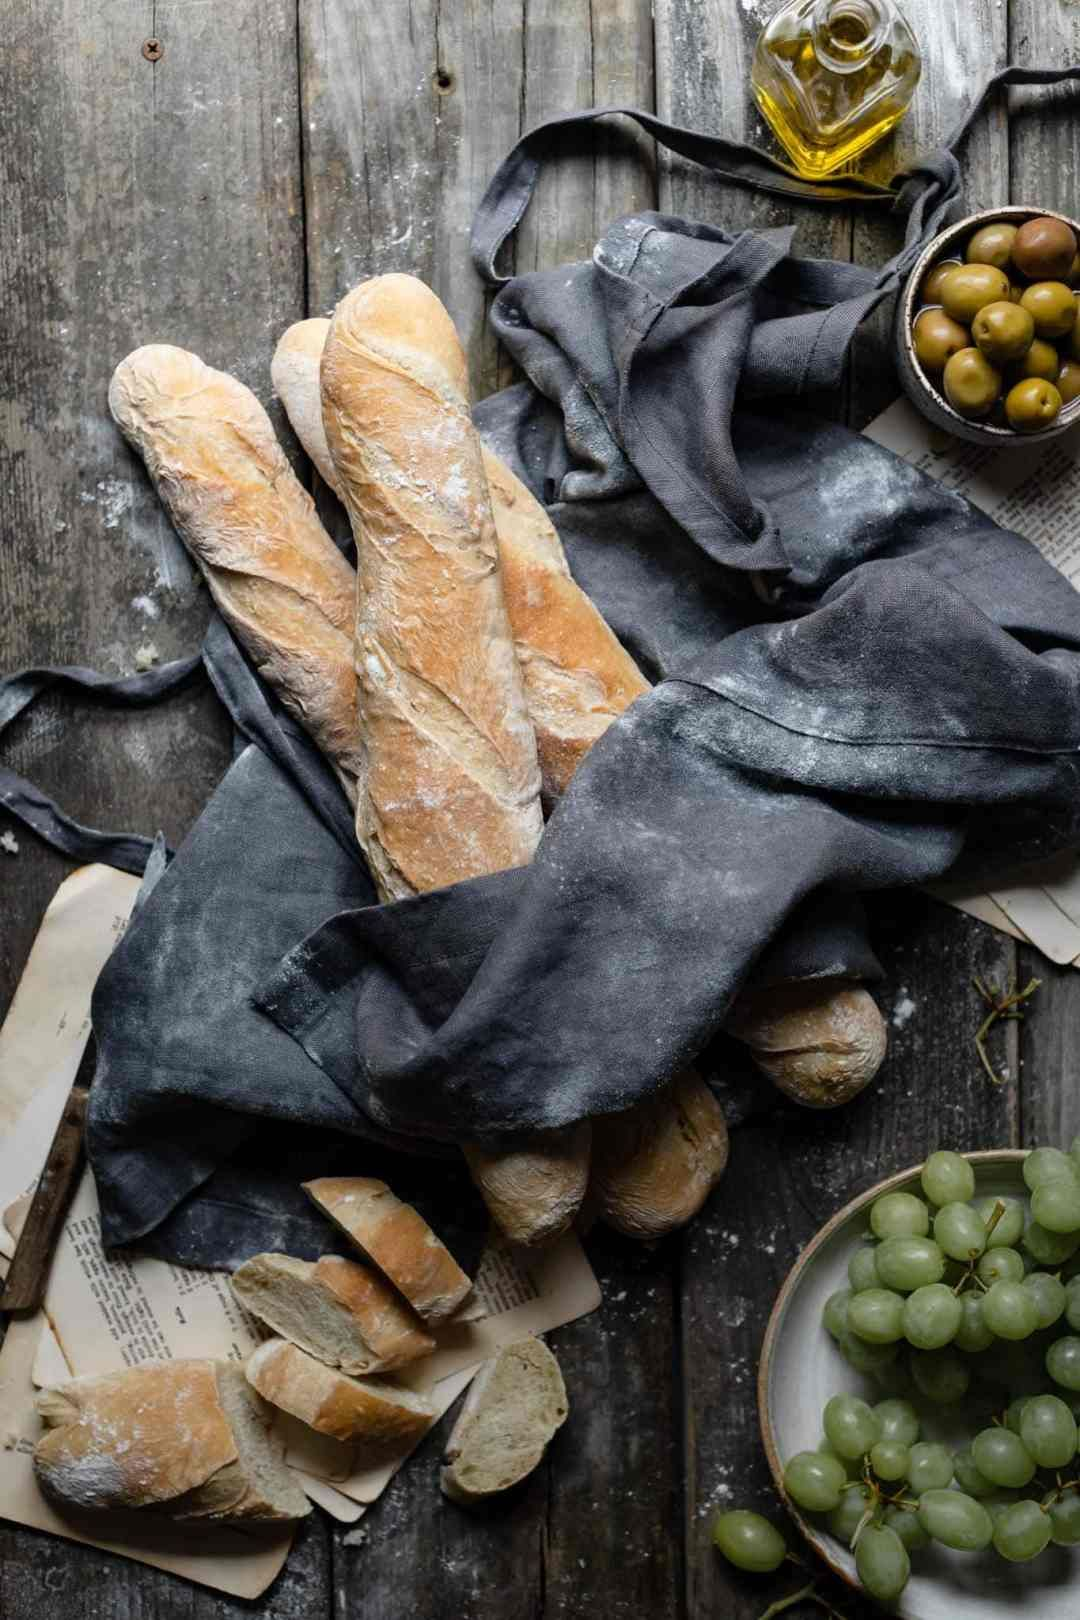 How to Make Homemade French Baguettes | Two Cups Flour ...